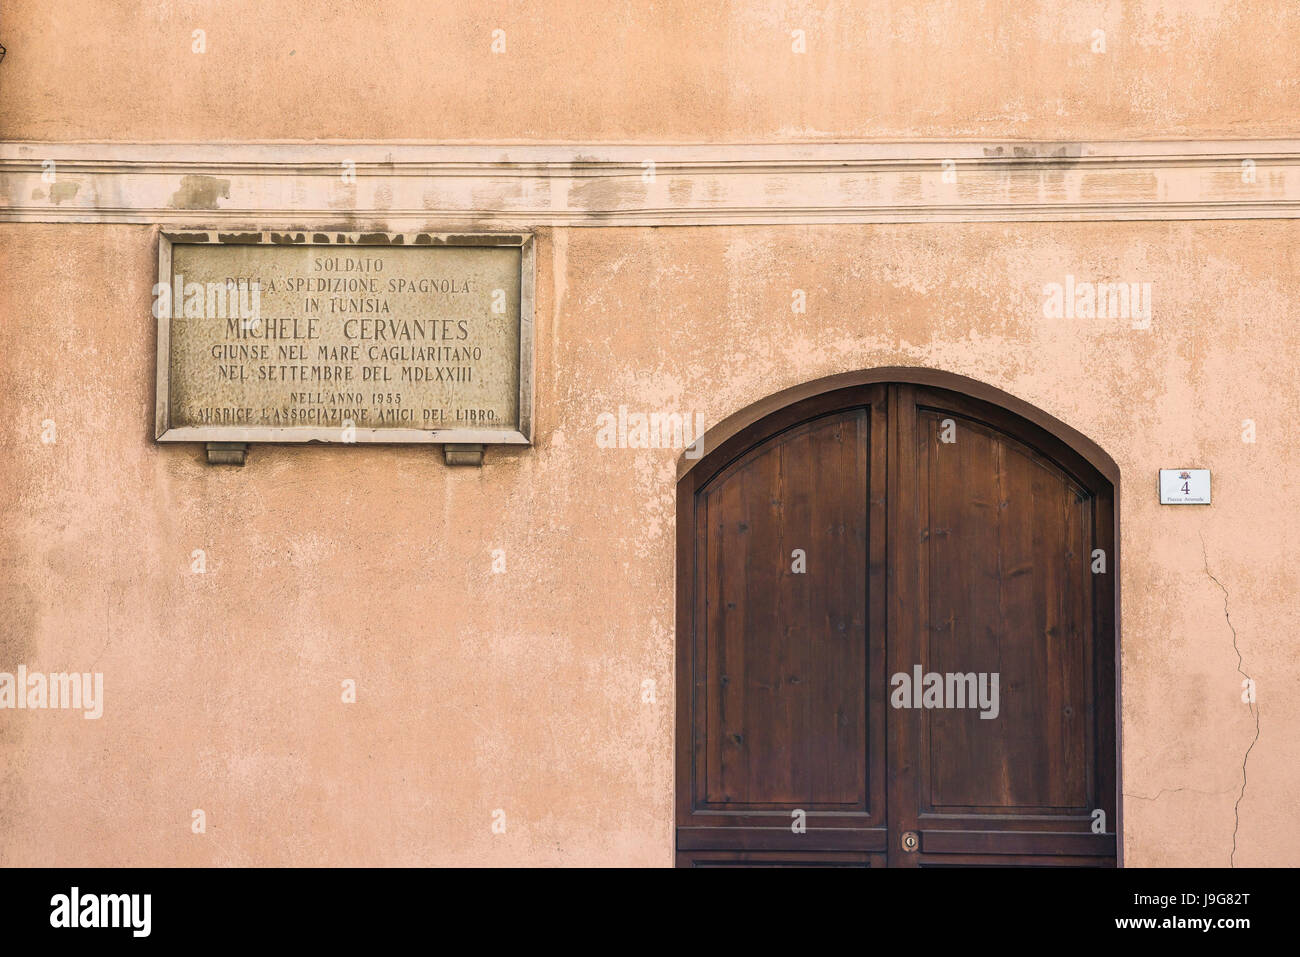 Cervantes Cagliari, plaque in the Piazza Arsenale recording the place where Miguel de Cervantes stayed in Cagliari, - Stock Image